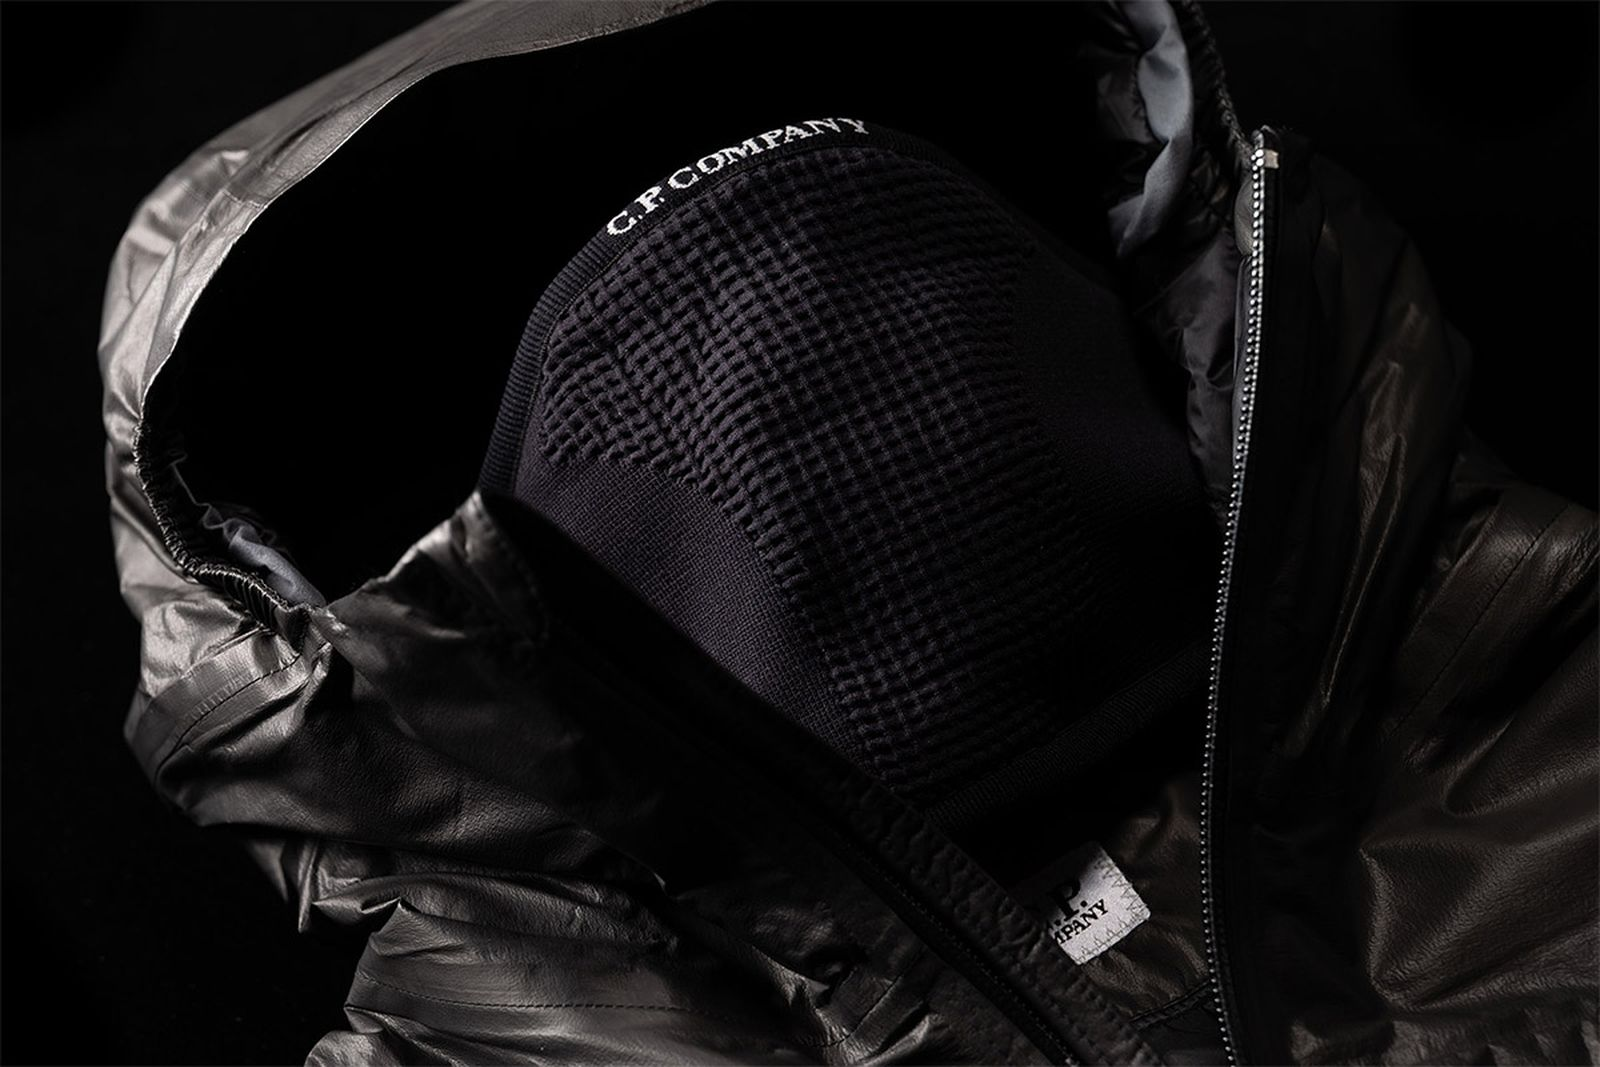 The remastered Metropolis jacket features an integrated face mask to offer essential protection for the urban explorer.